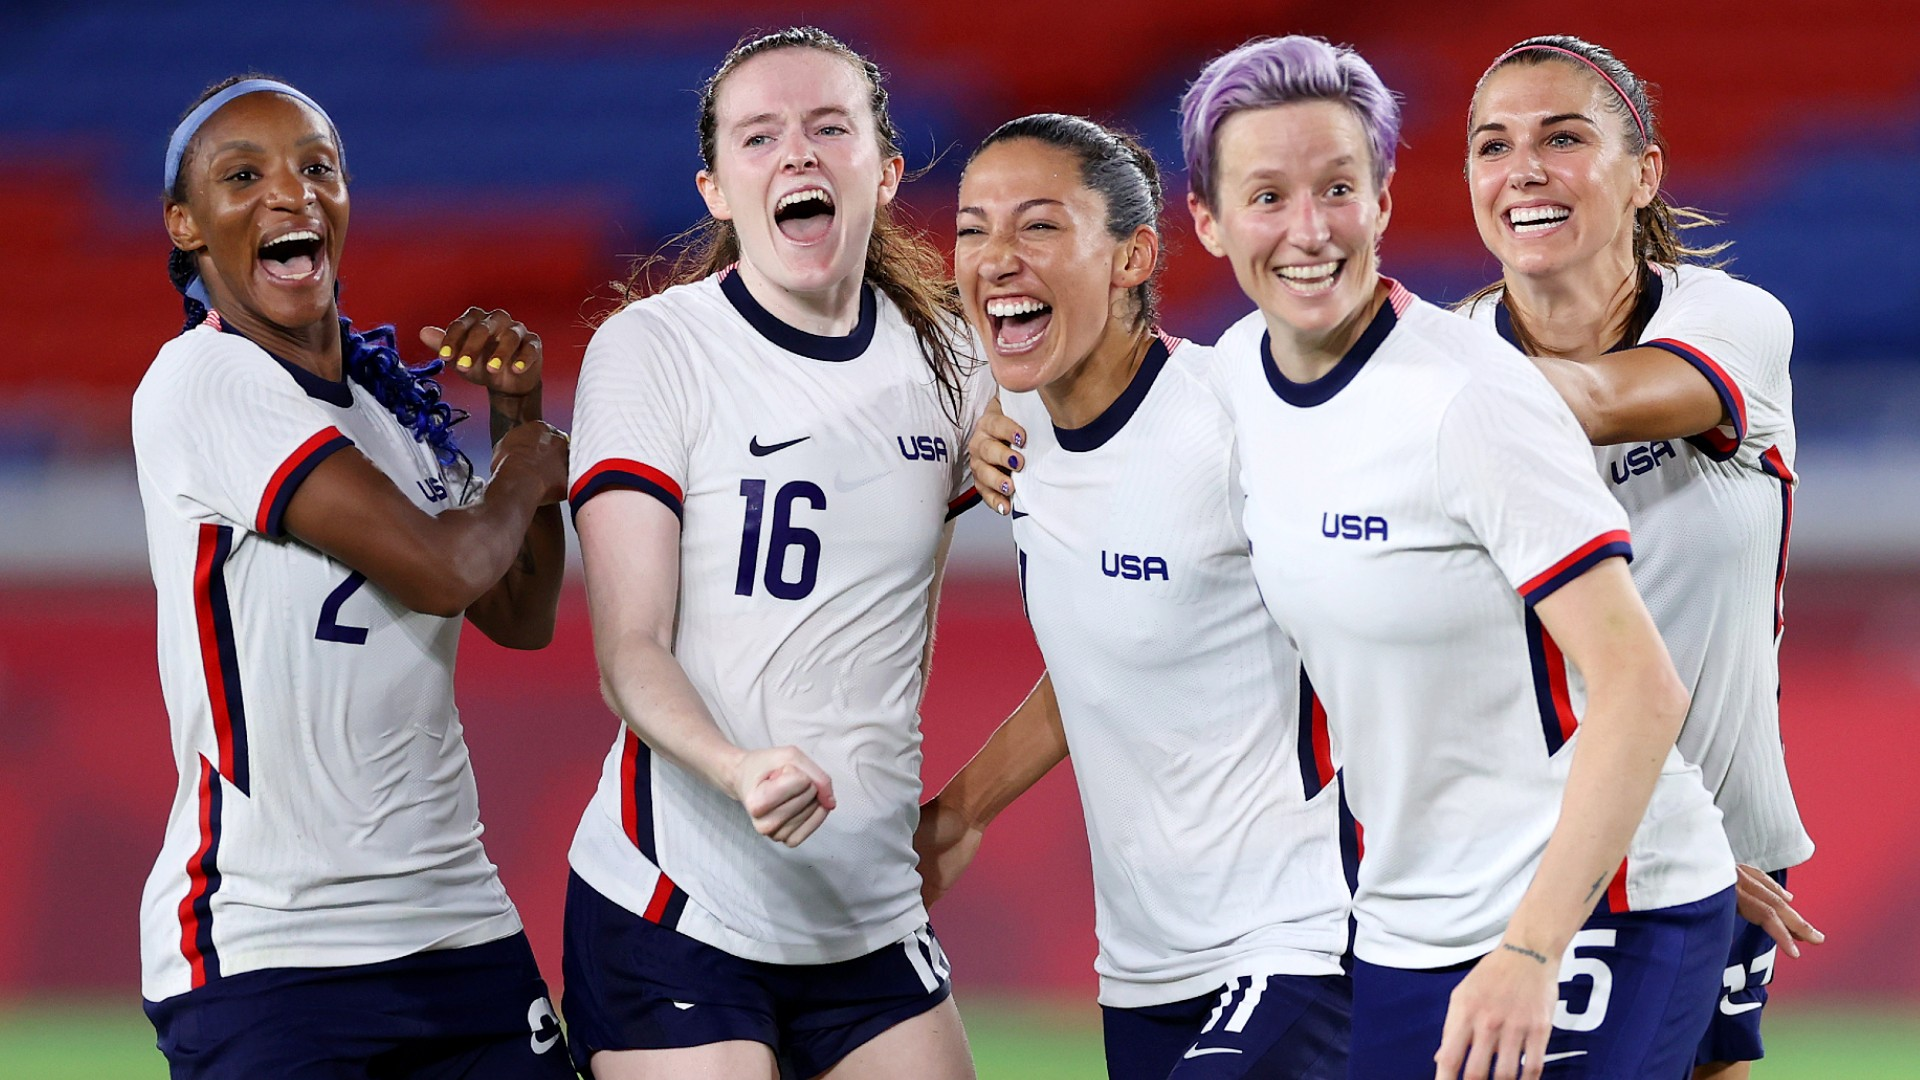 USWNT vs. Netherlands result: USA advances to Olympic soccer semifinals after penalty kick shootout win